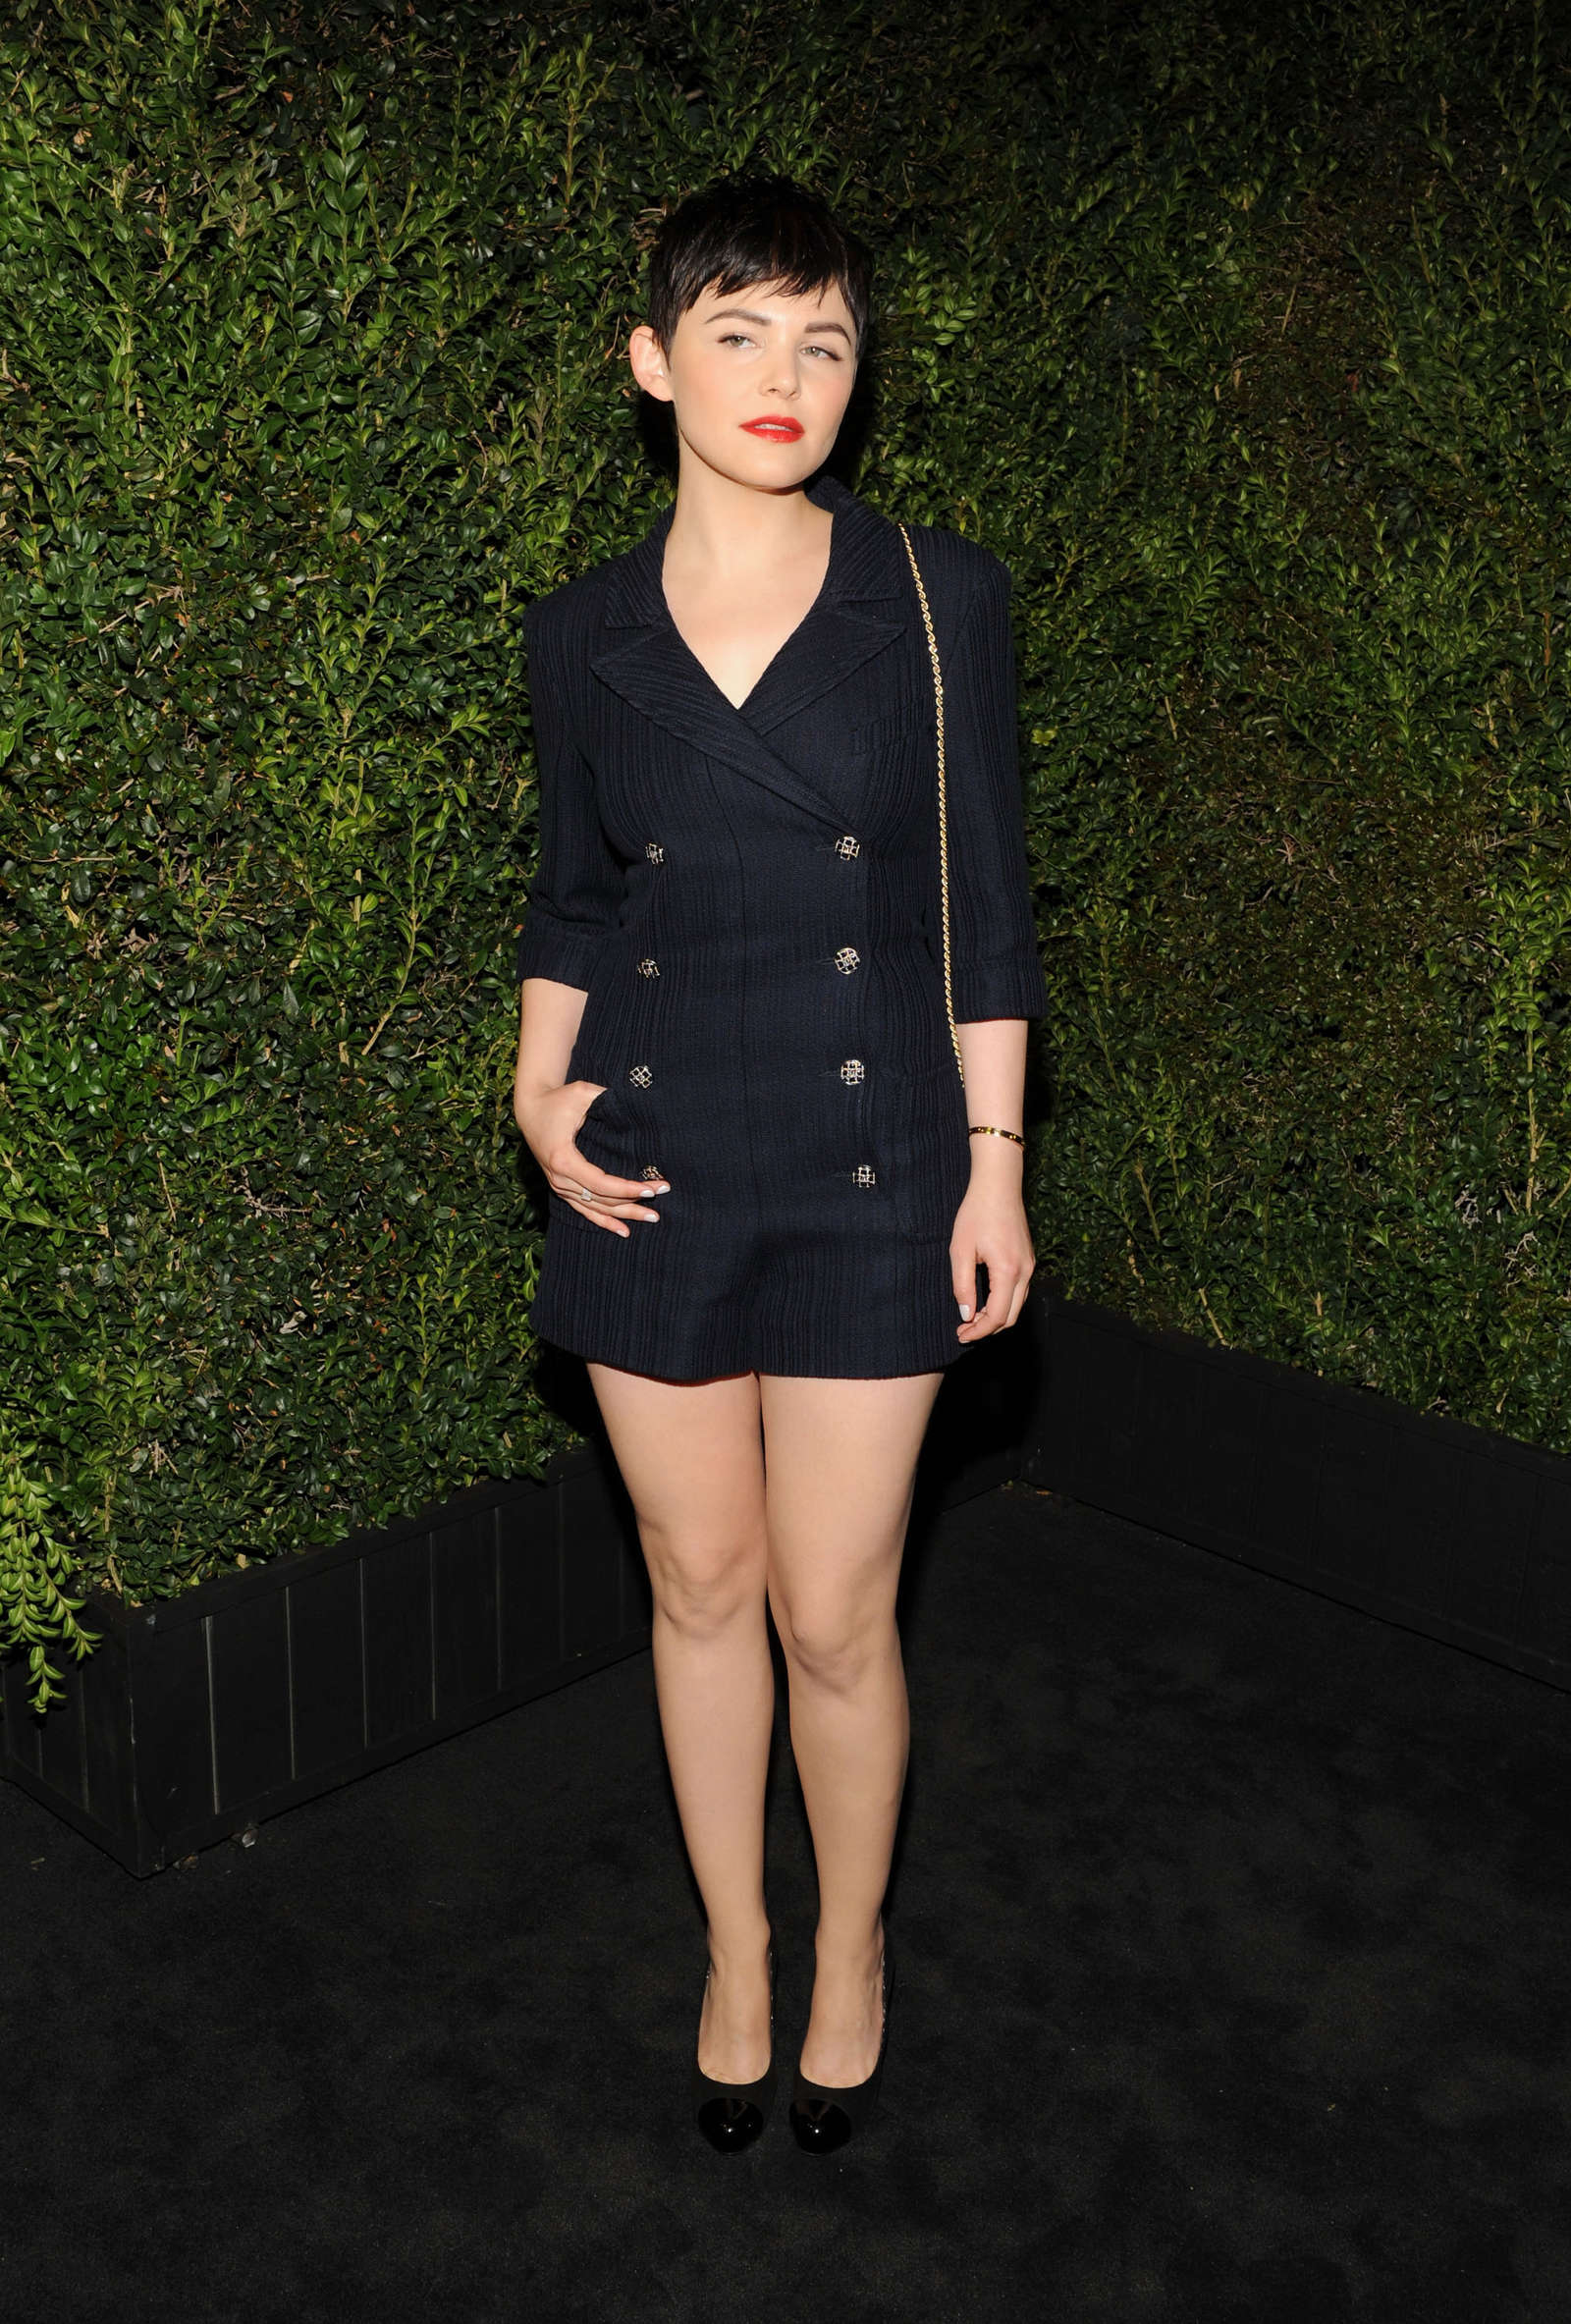 ginnifer goodwin chanel preoscar 2013 dinner 02 gotceleb